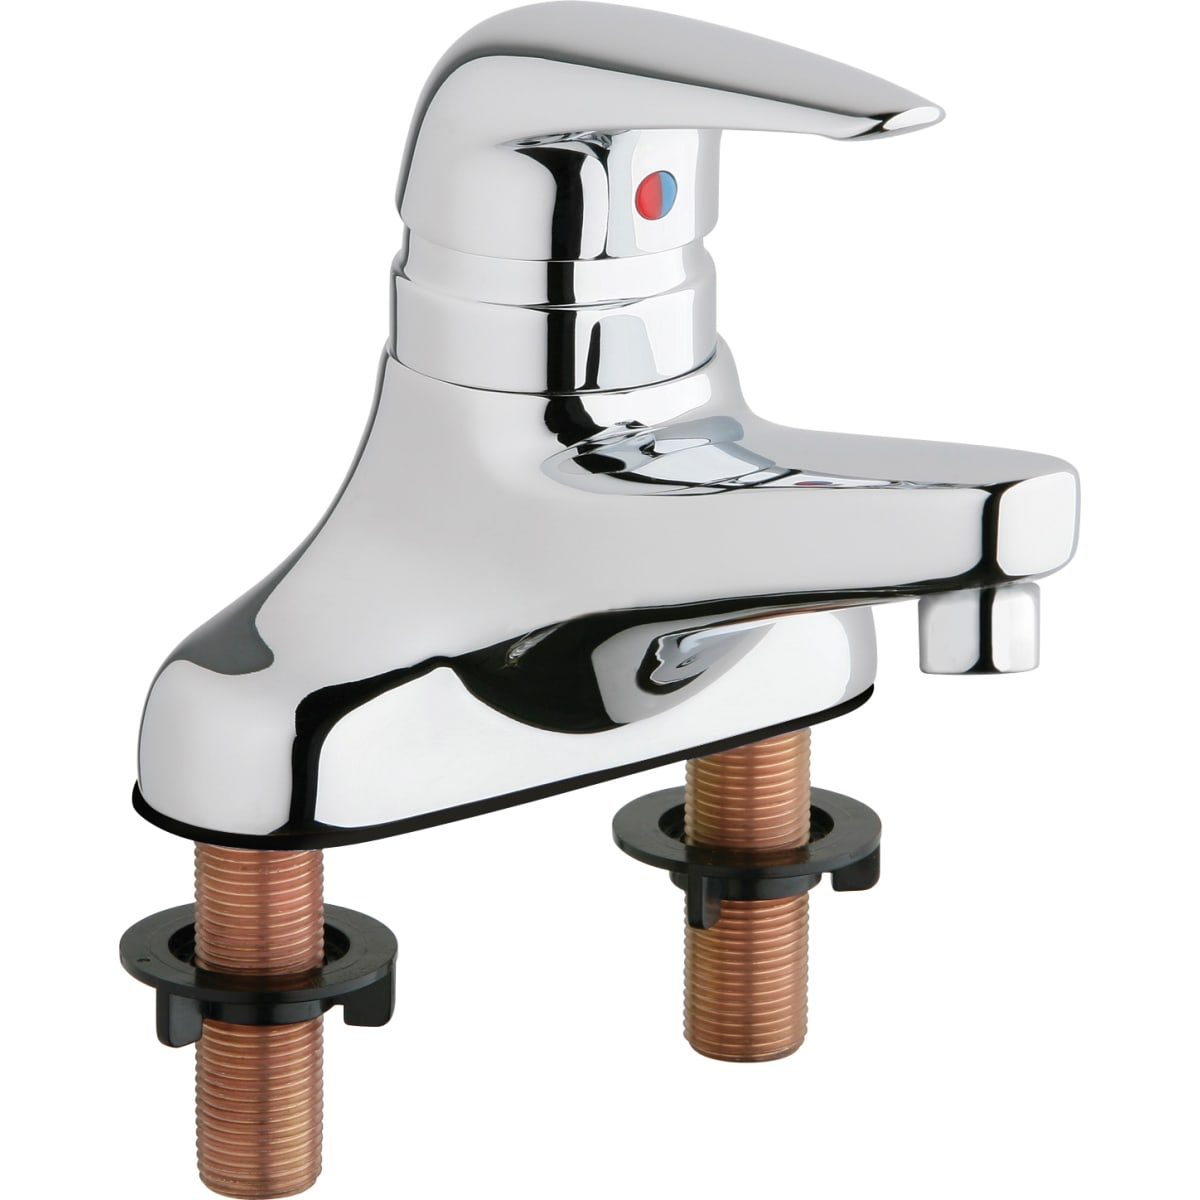 "Chicago Faucets Centerset Bathroom Faucet with 4"" Faucet Centers and Lever Handle"